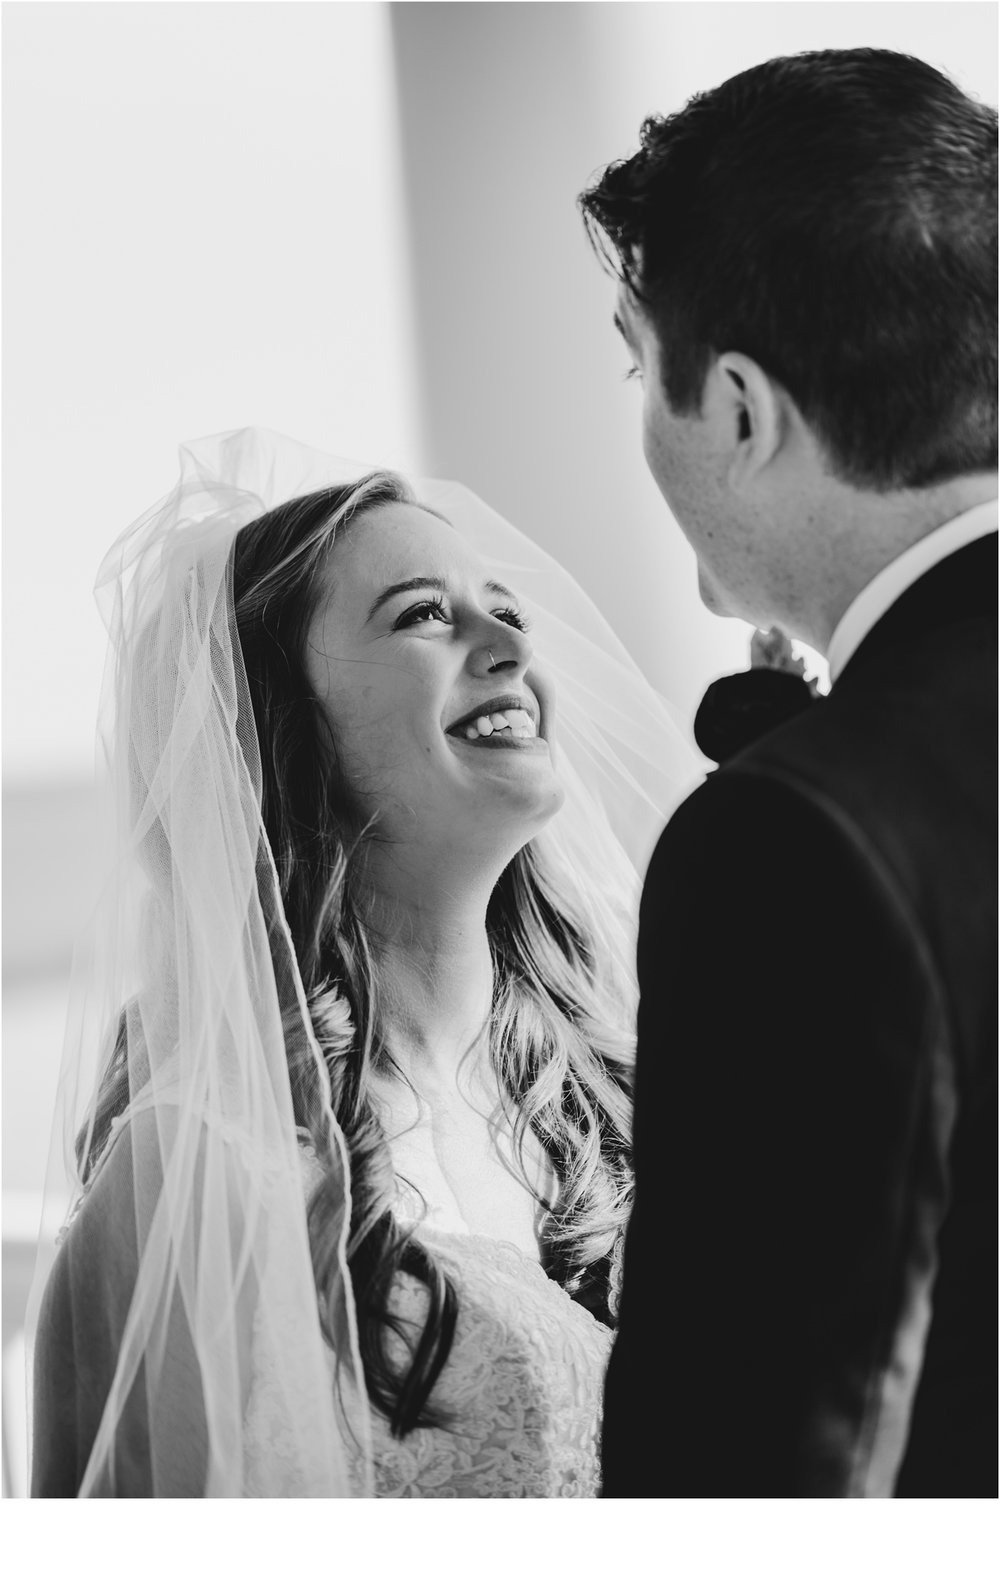 Rainey_Gregg_Photography_St._Simons_Island_Georgia_California_Wedding_Portrait_Photography_0783.jpg